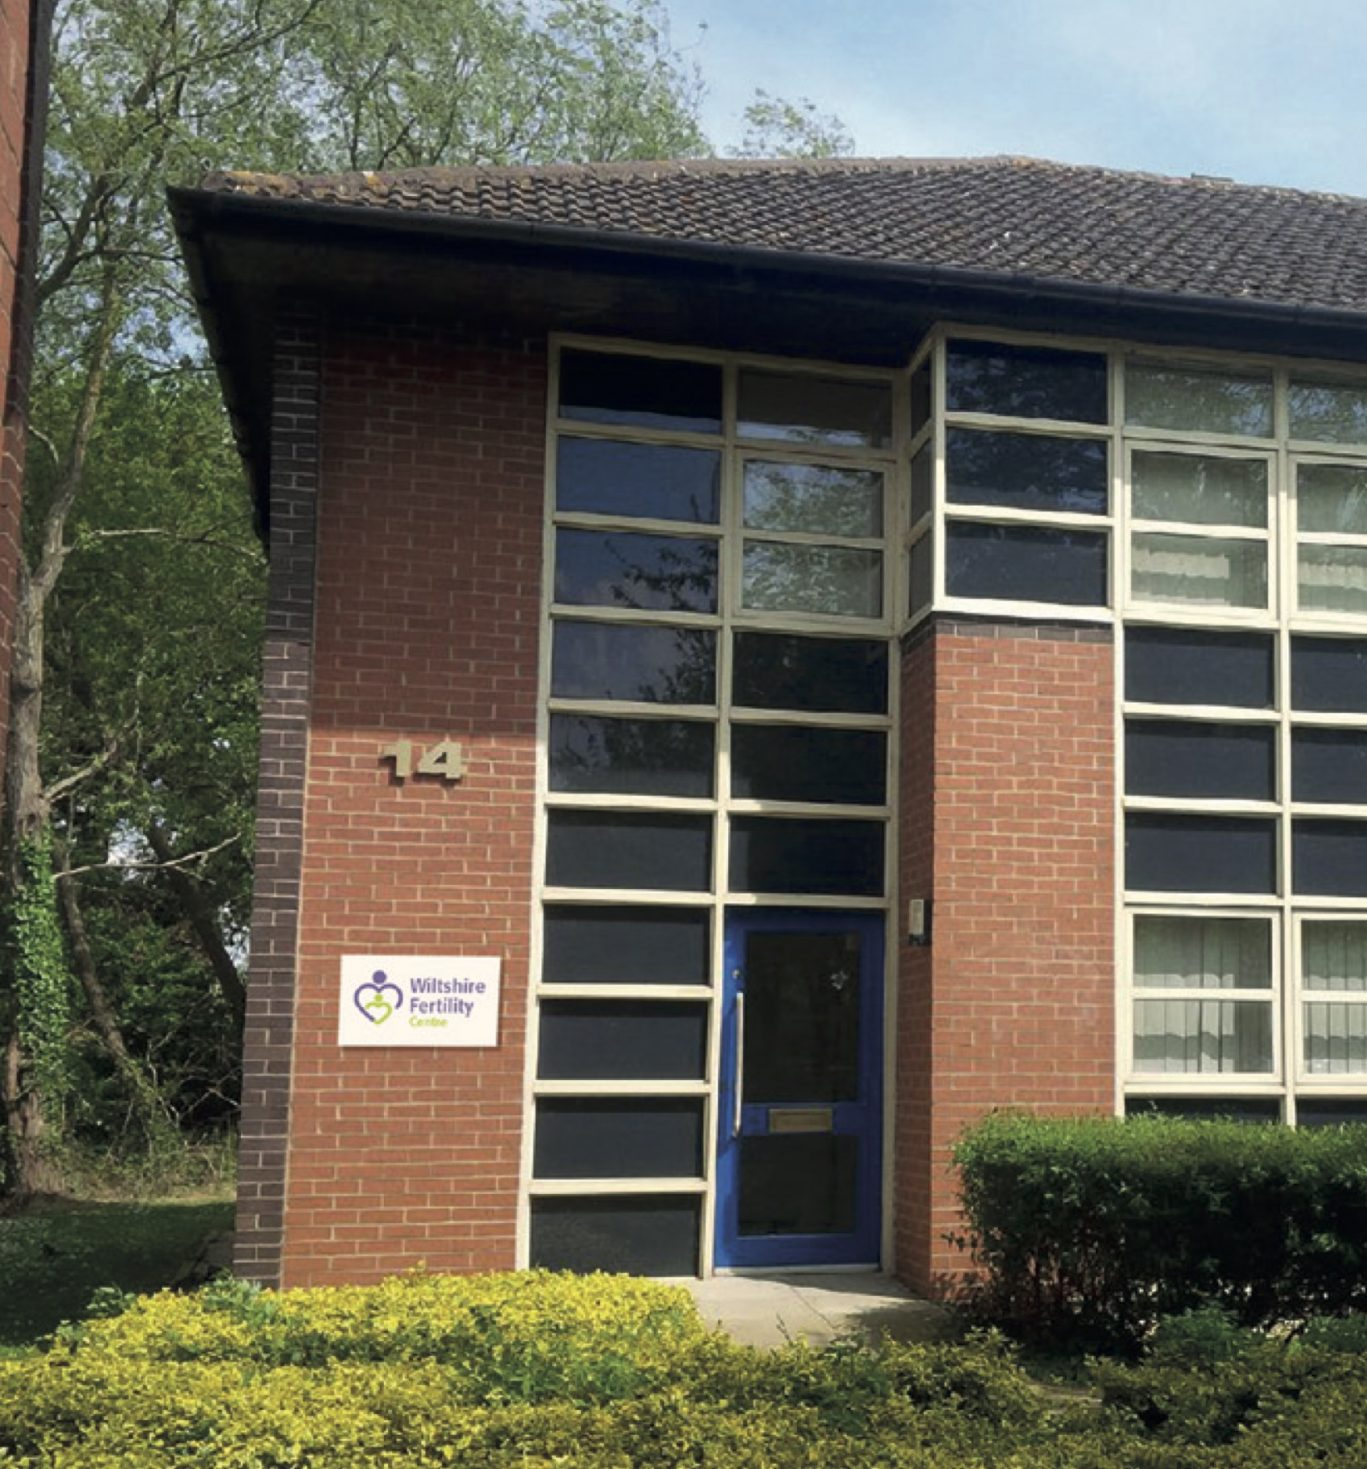 Swindon satellite clinic building